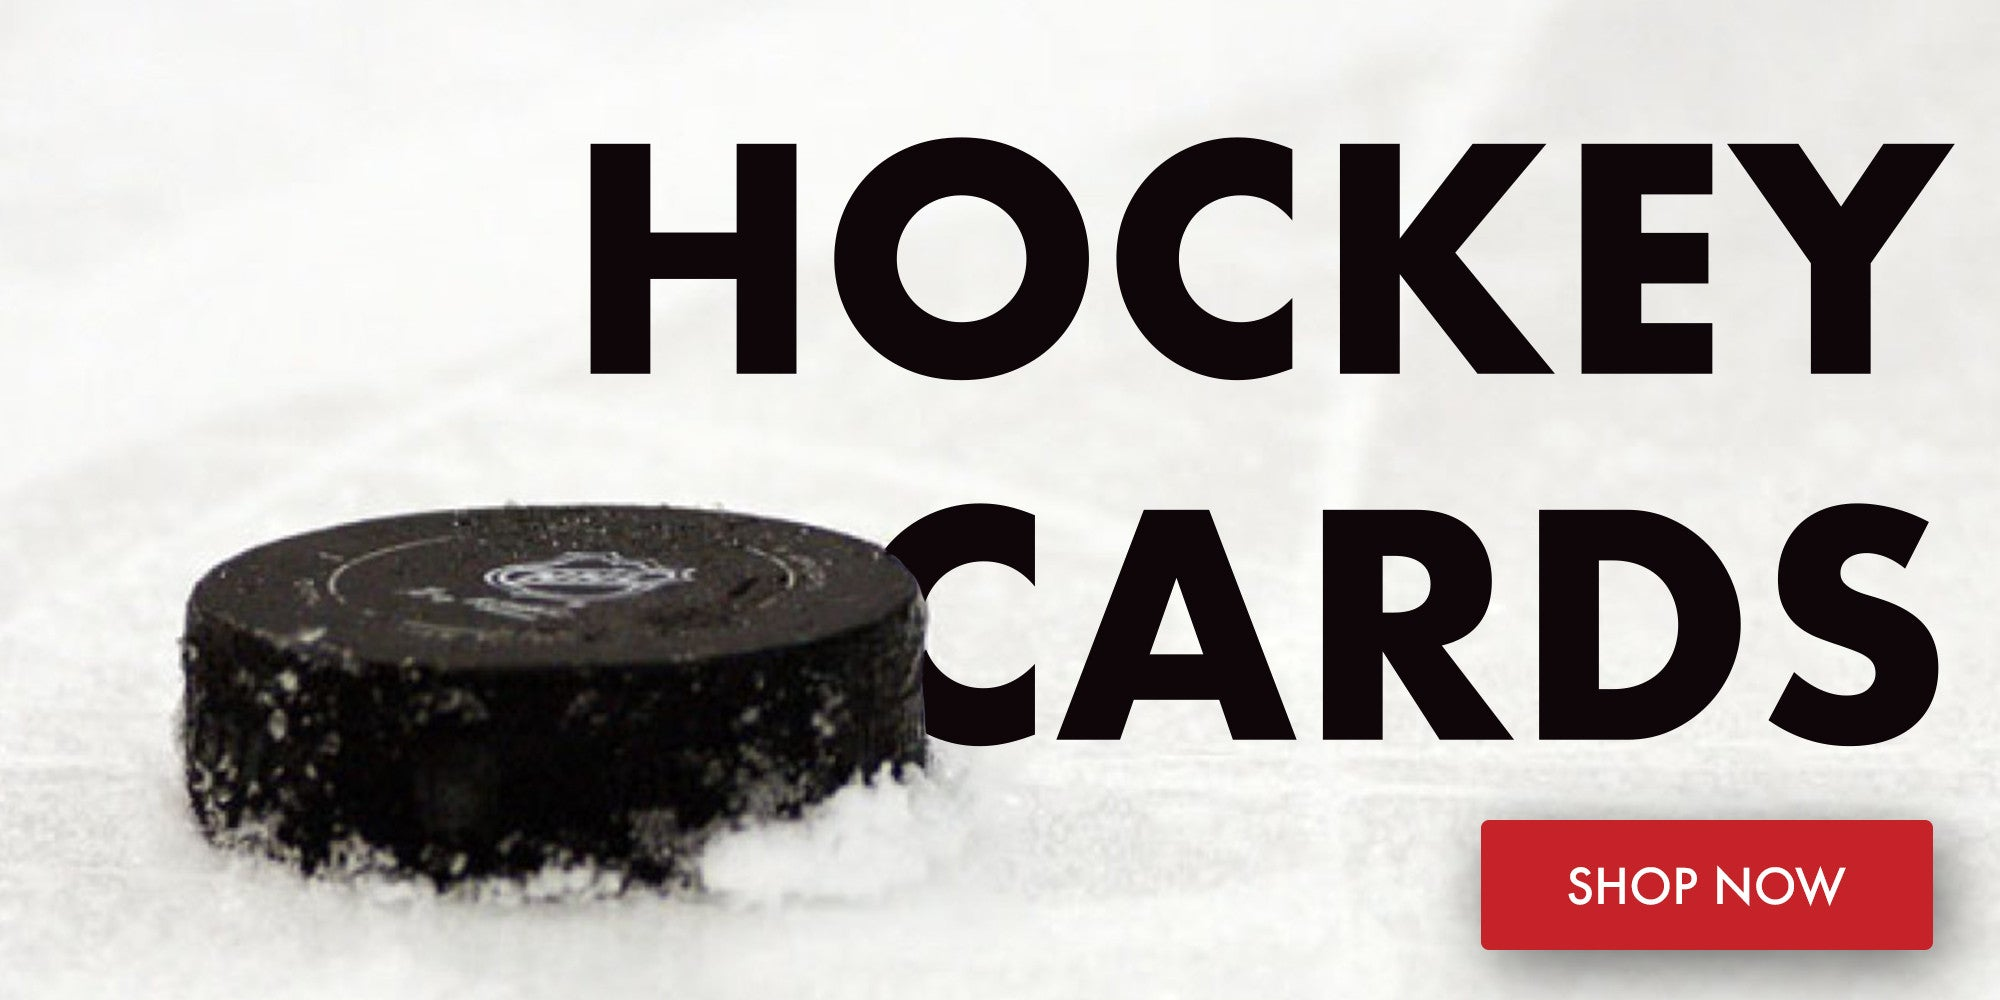 Shop for Hockey Cards